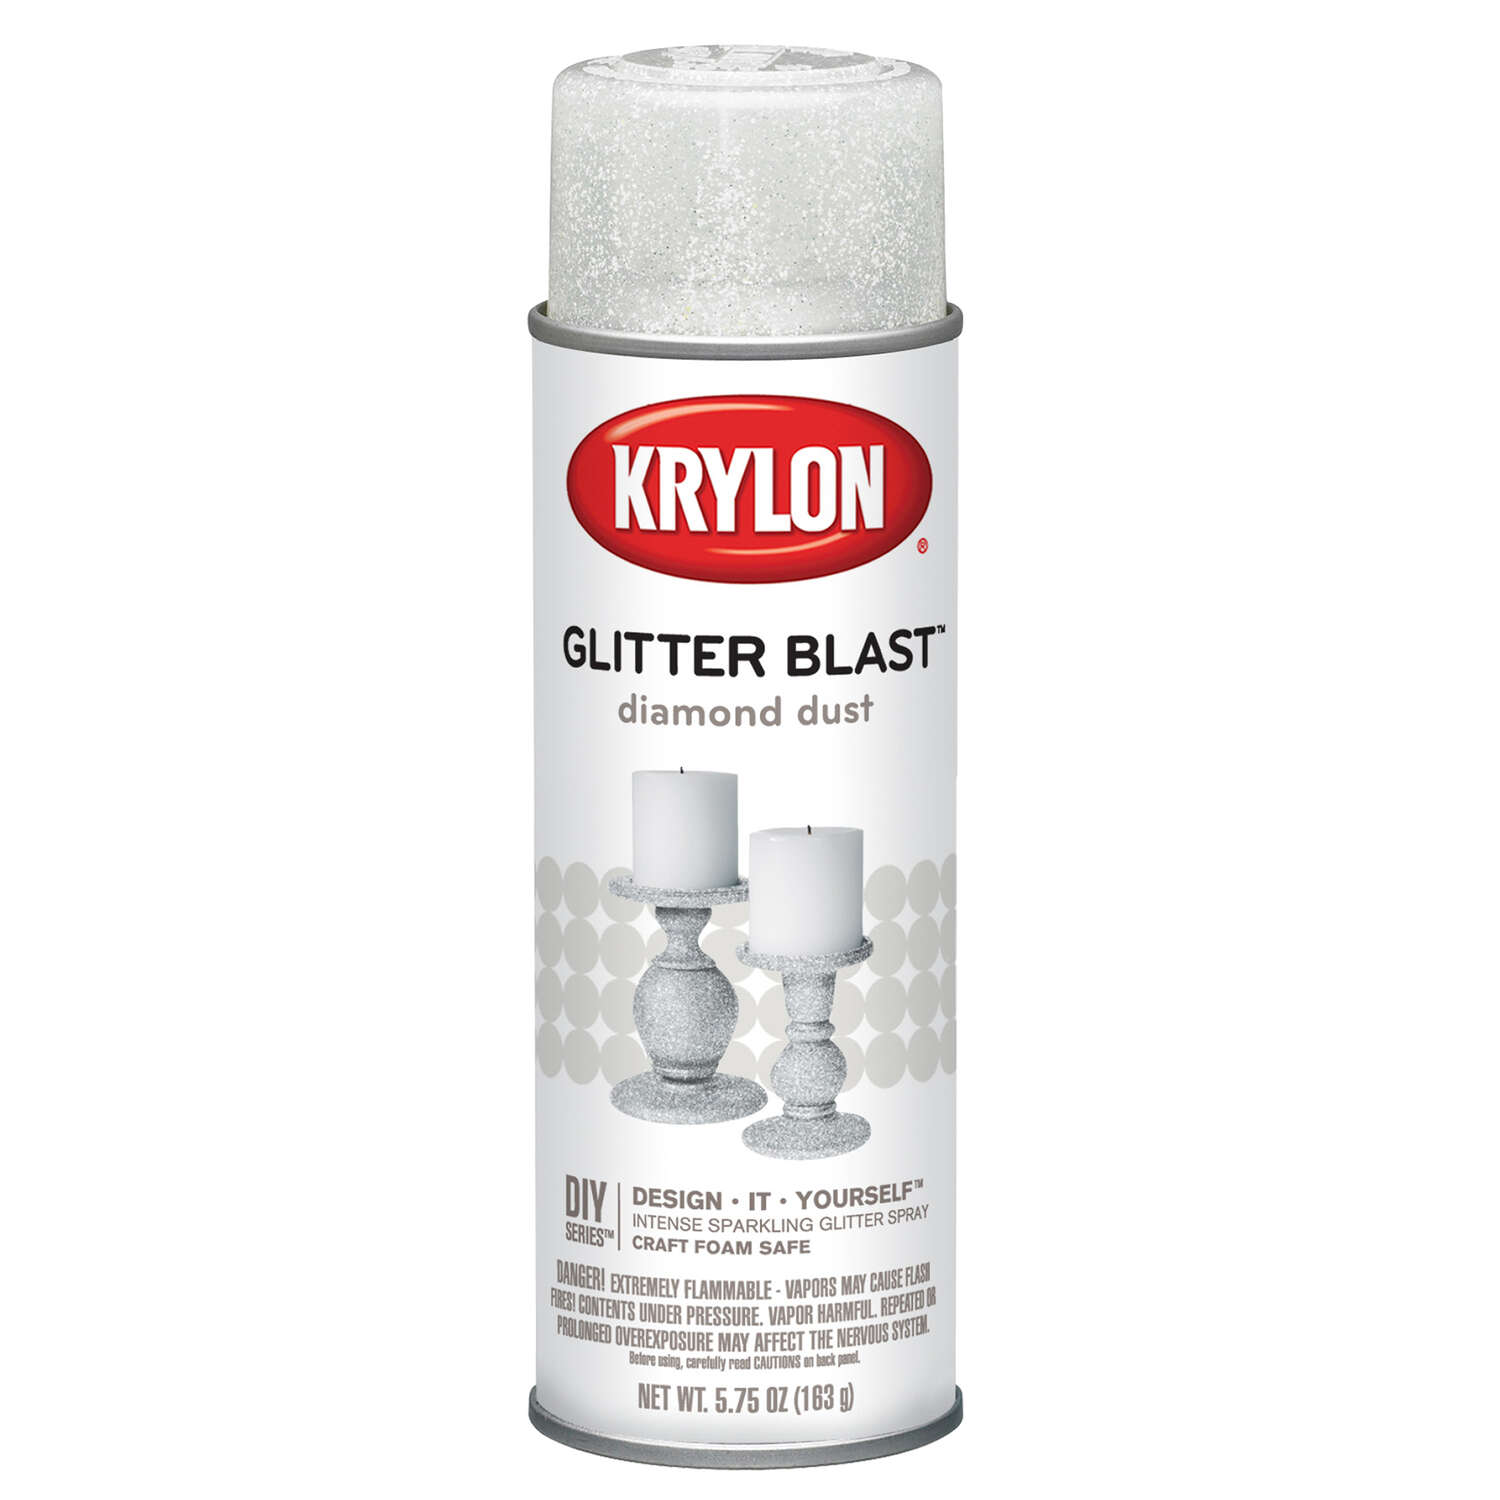 Krylon  Diamond Dust  Glitter Blast Spray Paint  5.75 oz.